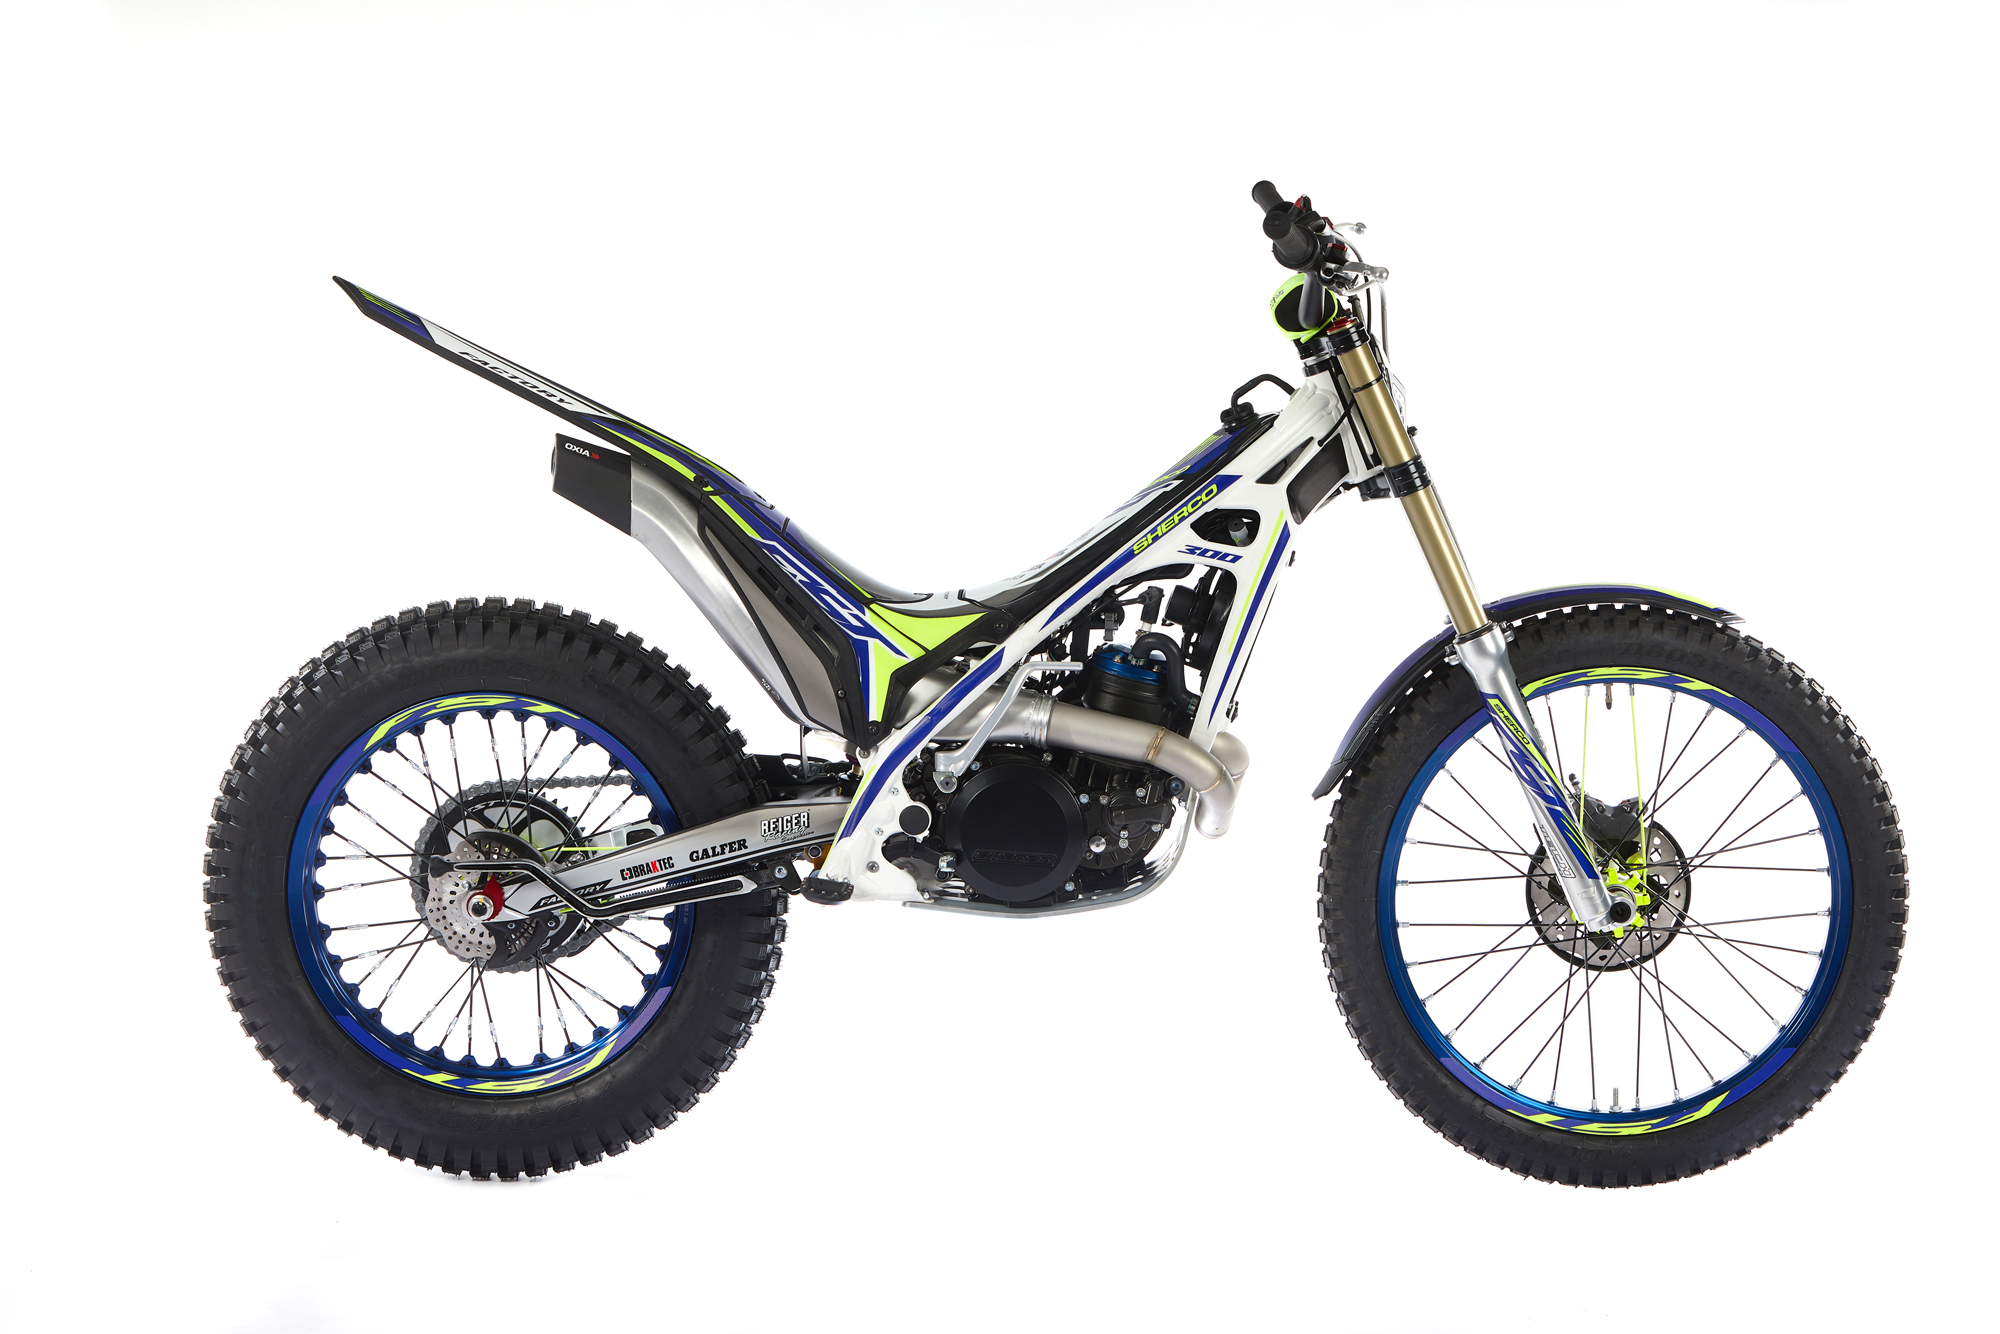 New Trials Bikes